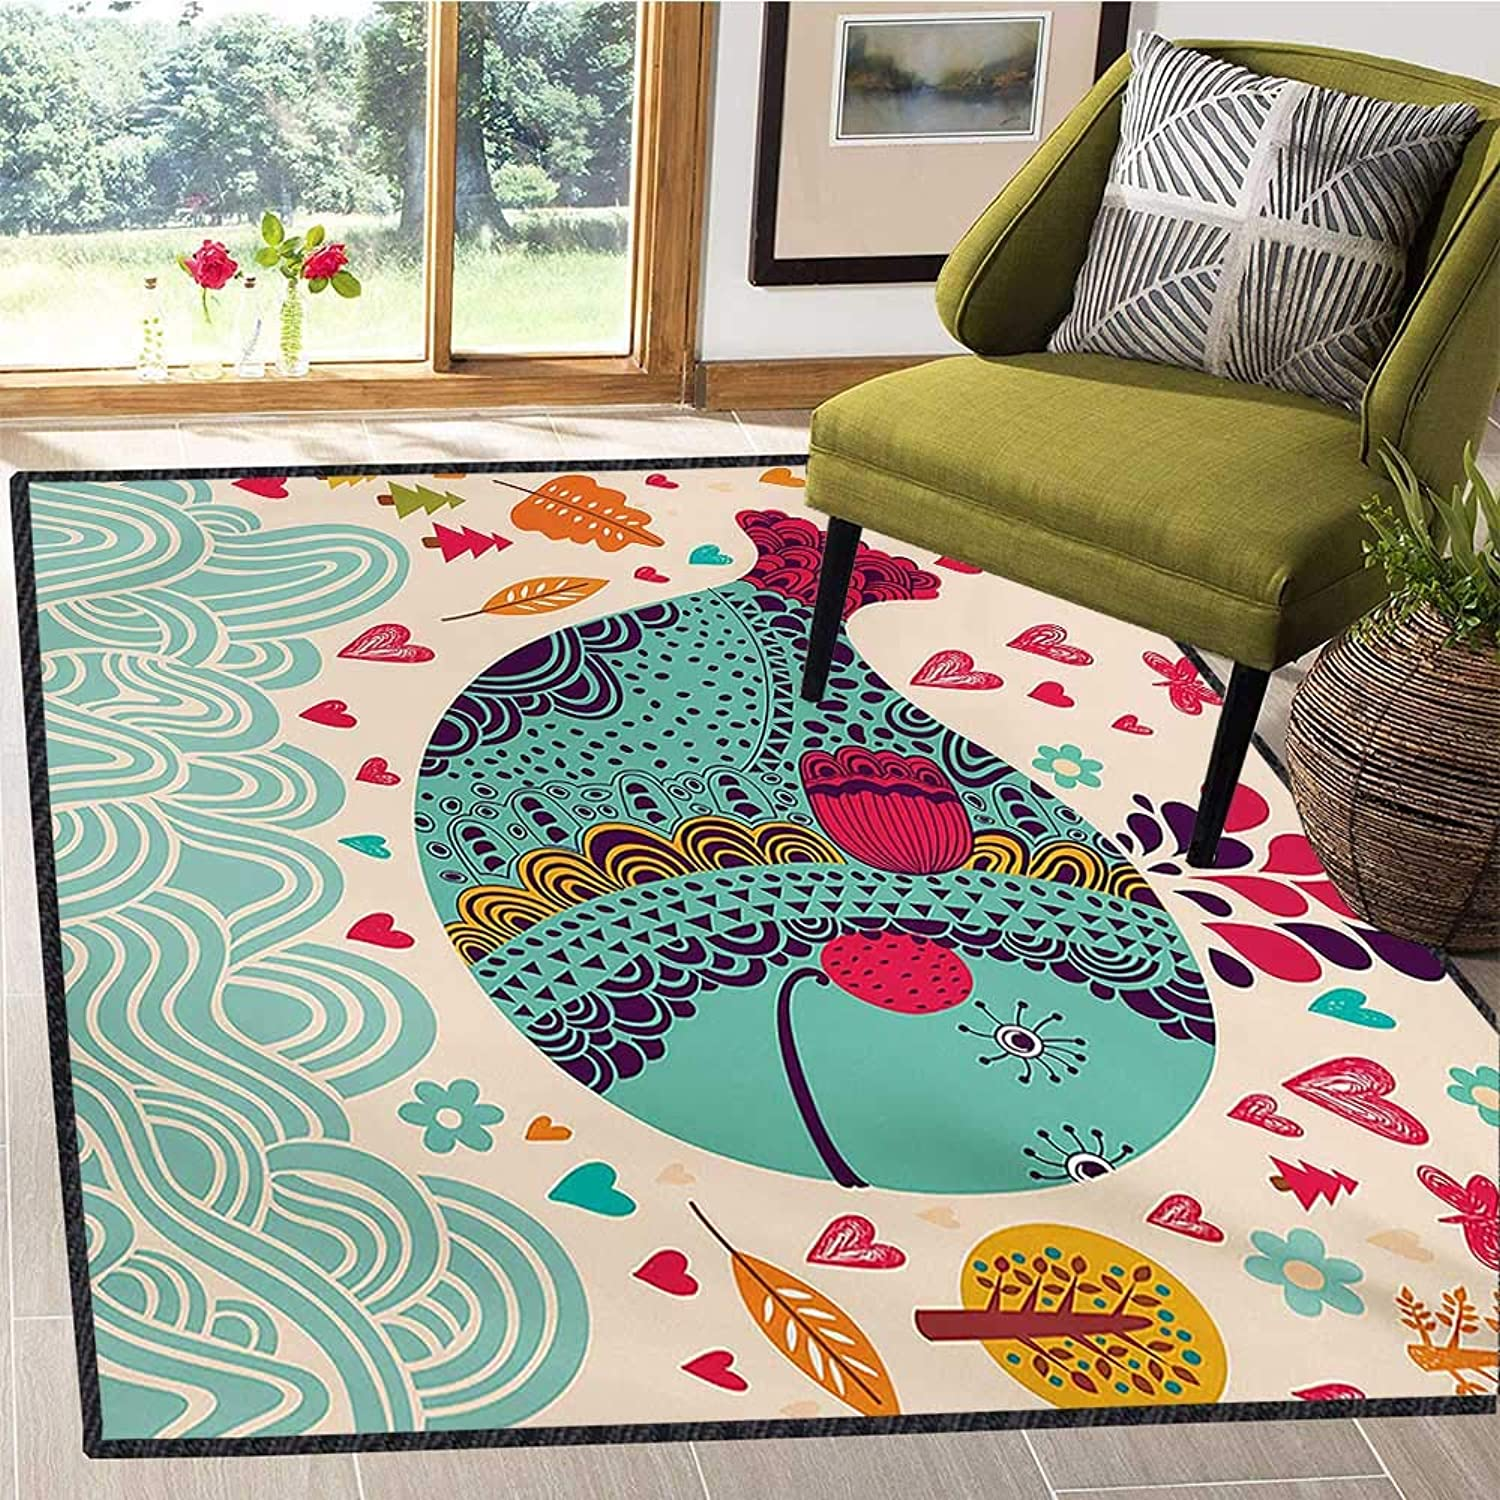 Whale, Area Rug Door Mat, colorful Ornamental Designed Big Whale with Waves Plants and Hearts Around Print, Door Mat Increase 4x5 Ft Multi colord